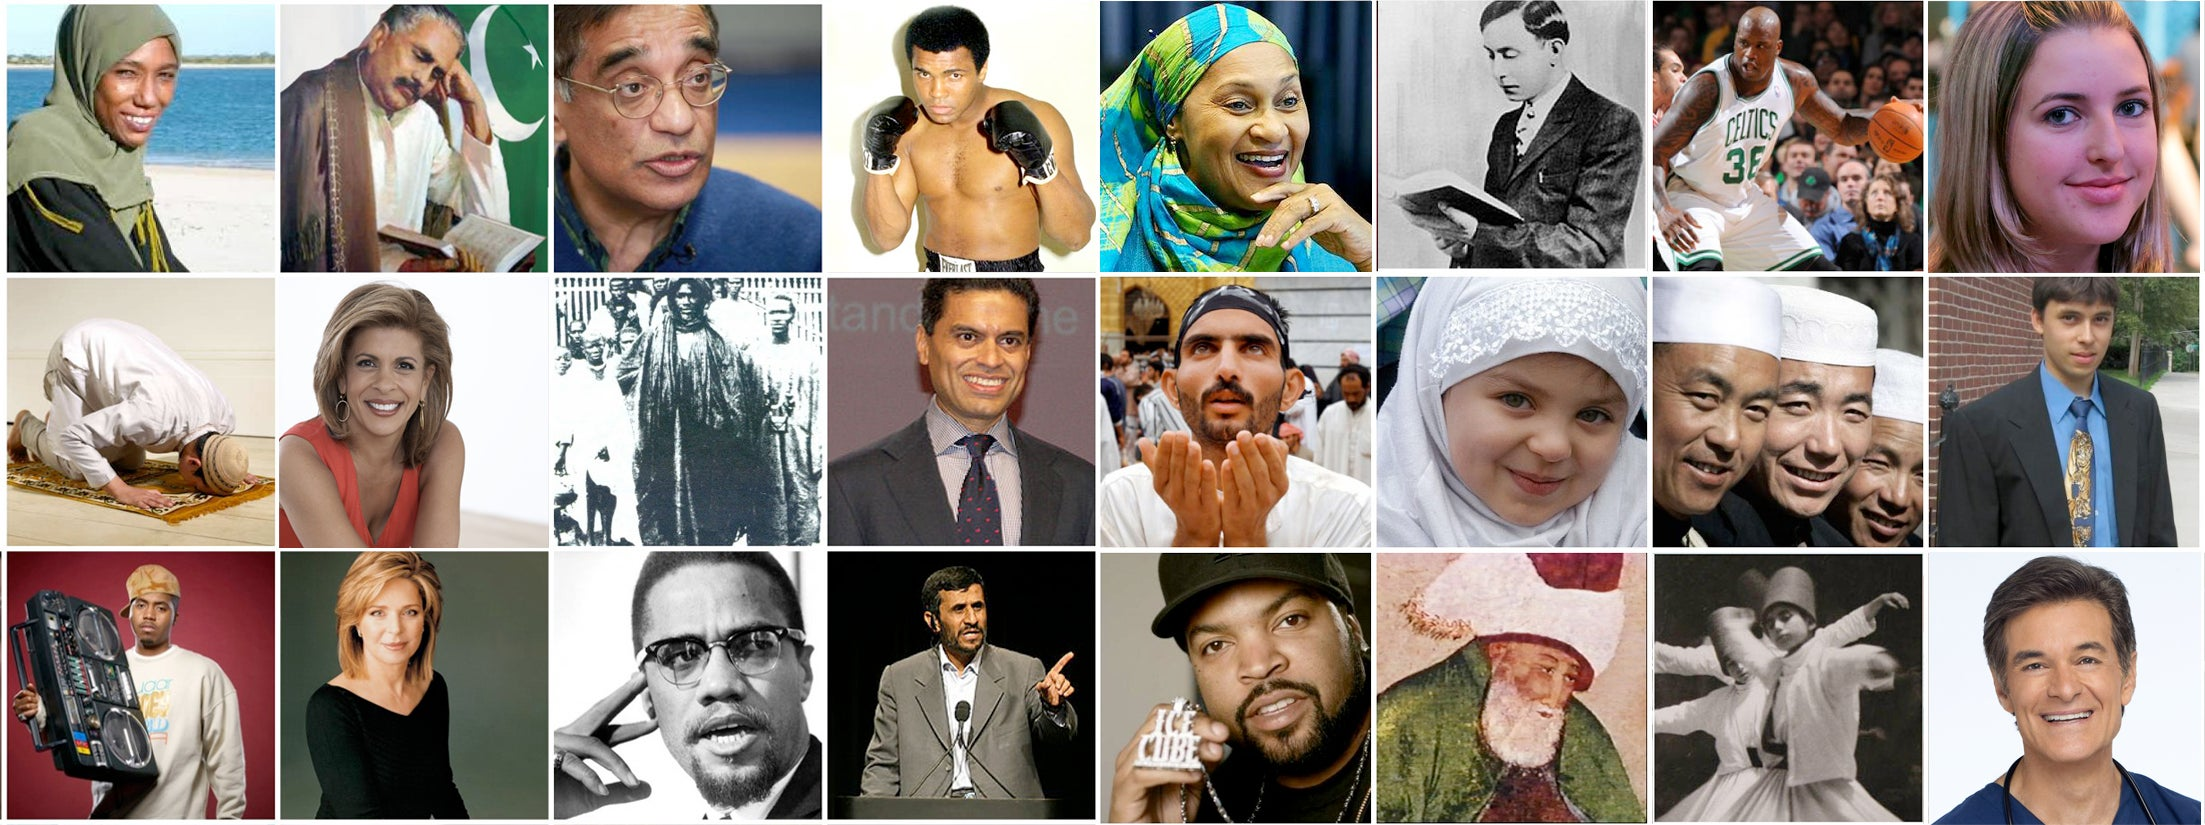 Collage of diverse Muslims